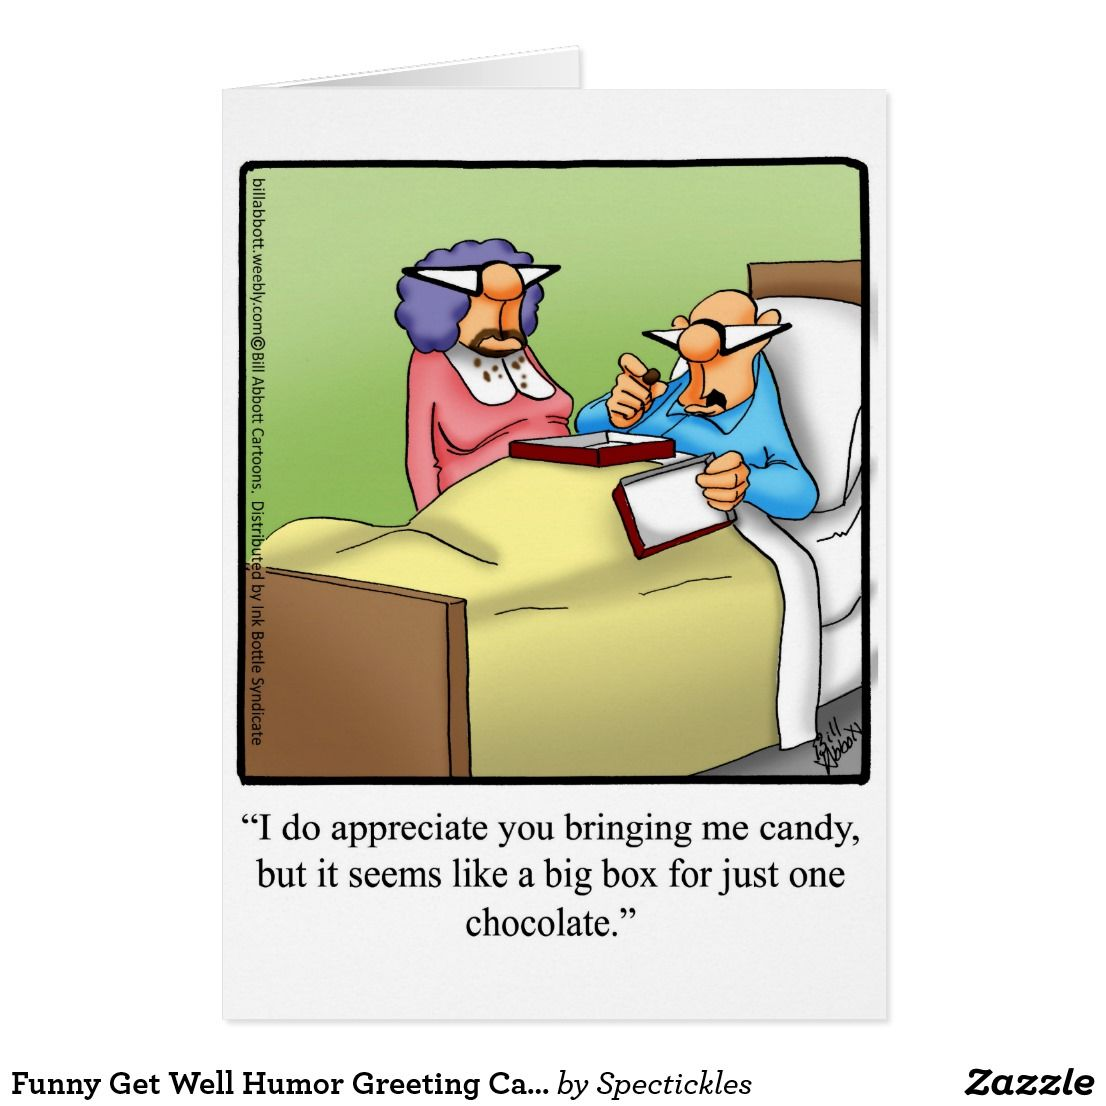 Howling Ny Get Well Humor Greeting Card Ny Get Well Humor Greeting Card Humour Ny Get Well Memes Ny Get Well Ecards cards Funny Get Well